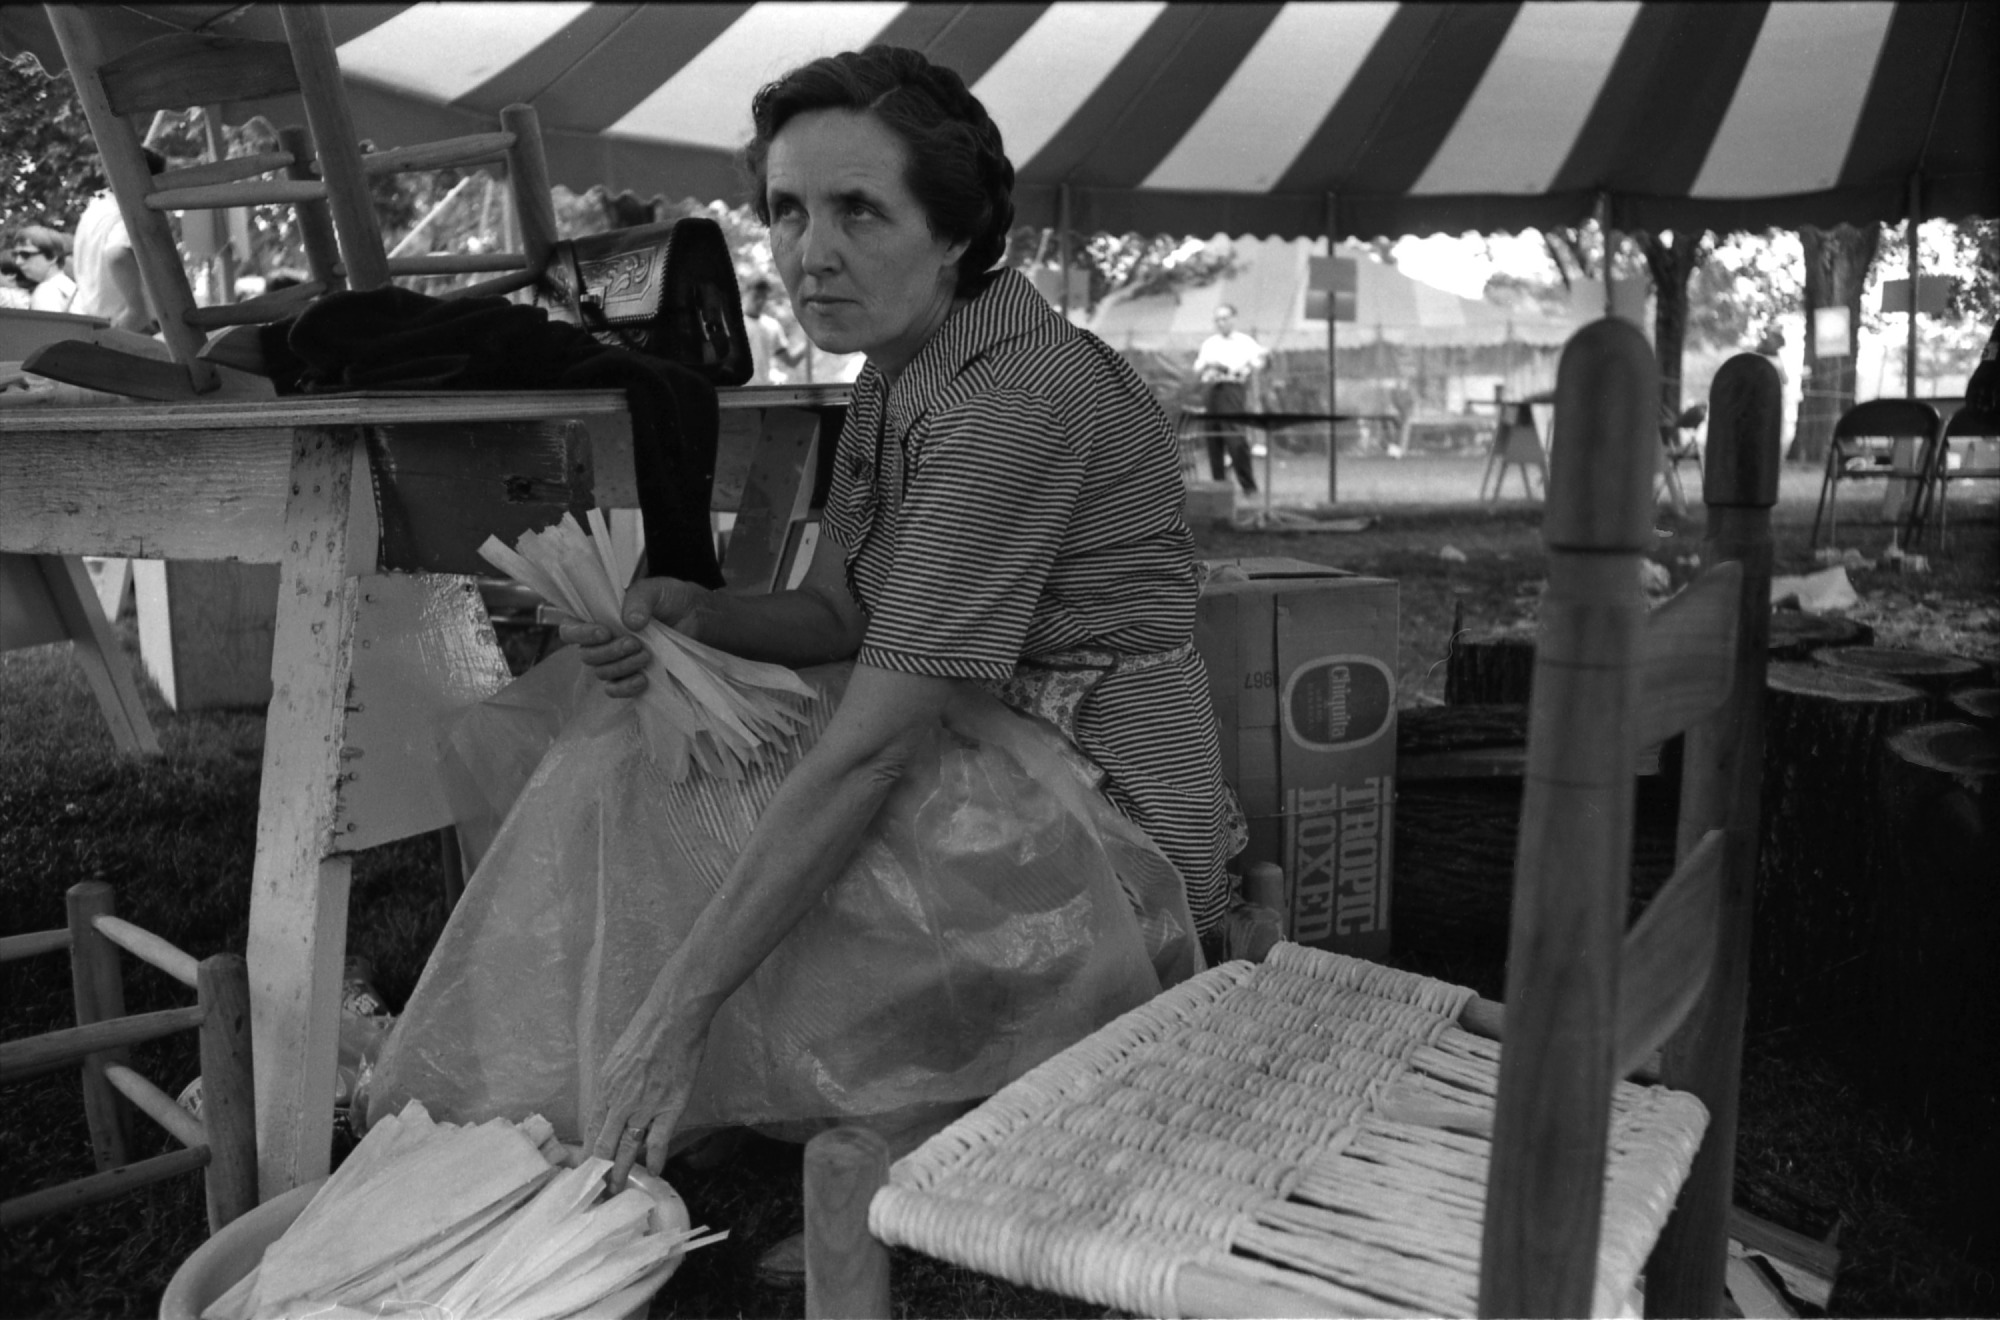 Woman at Festival of American Folklife, 1967